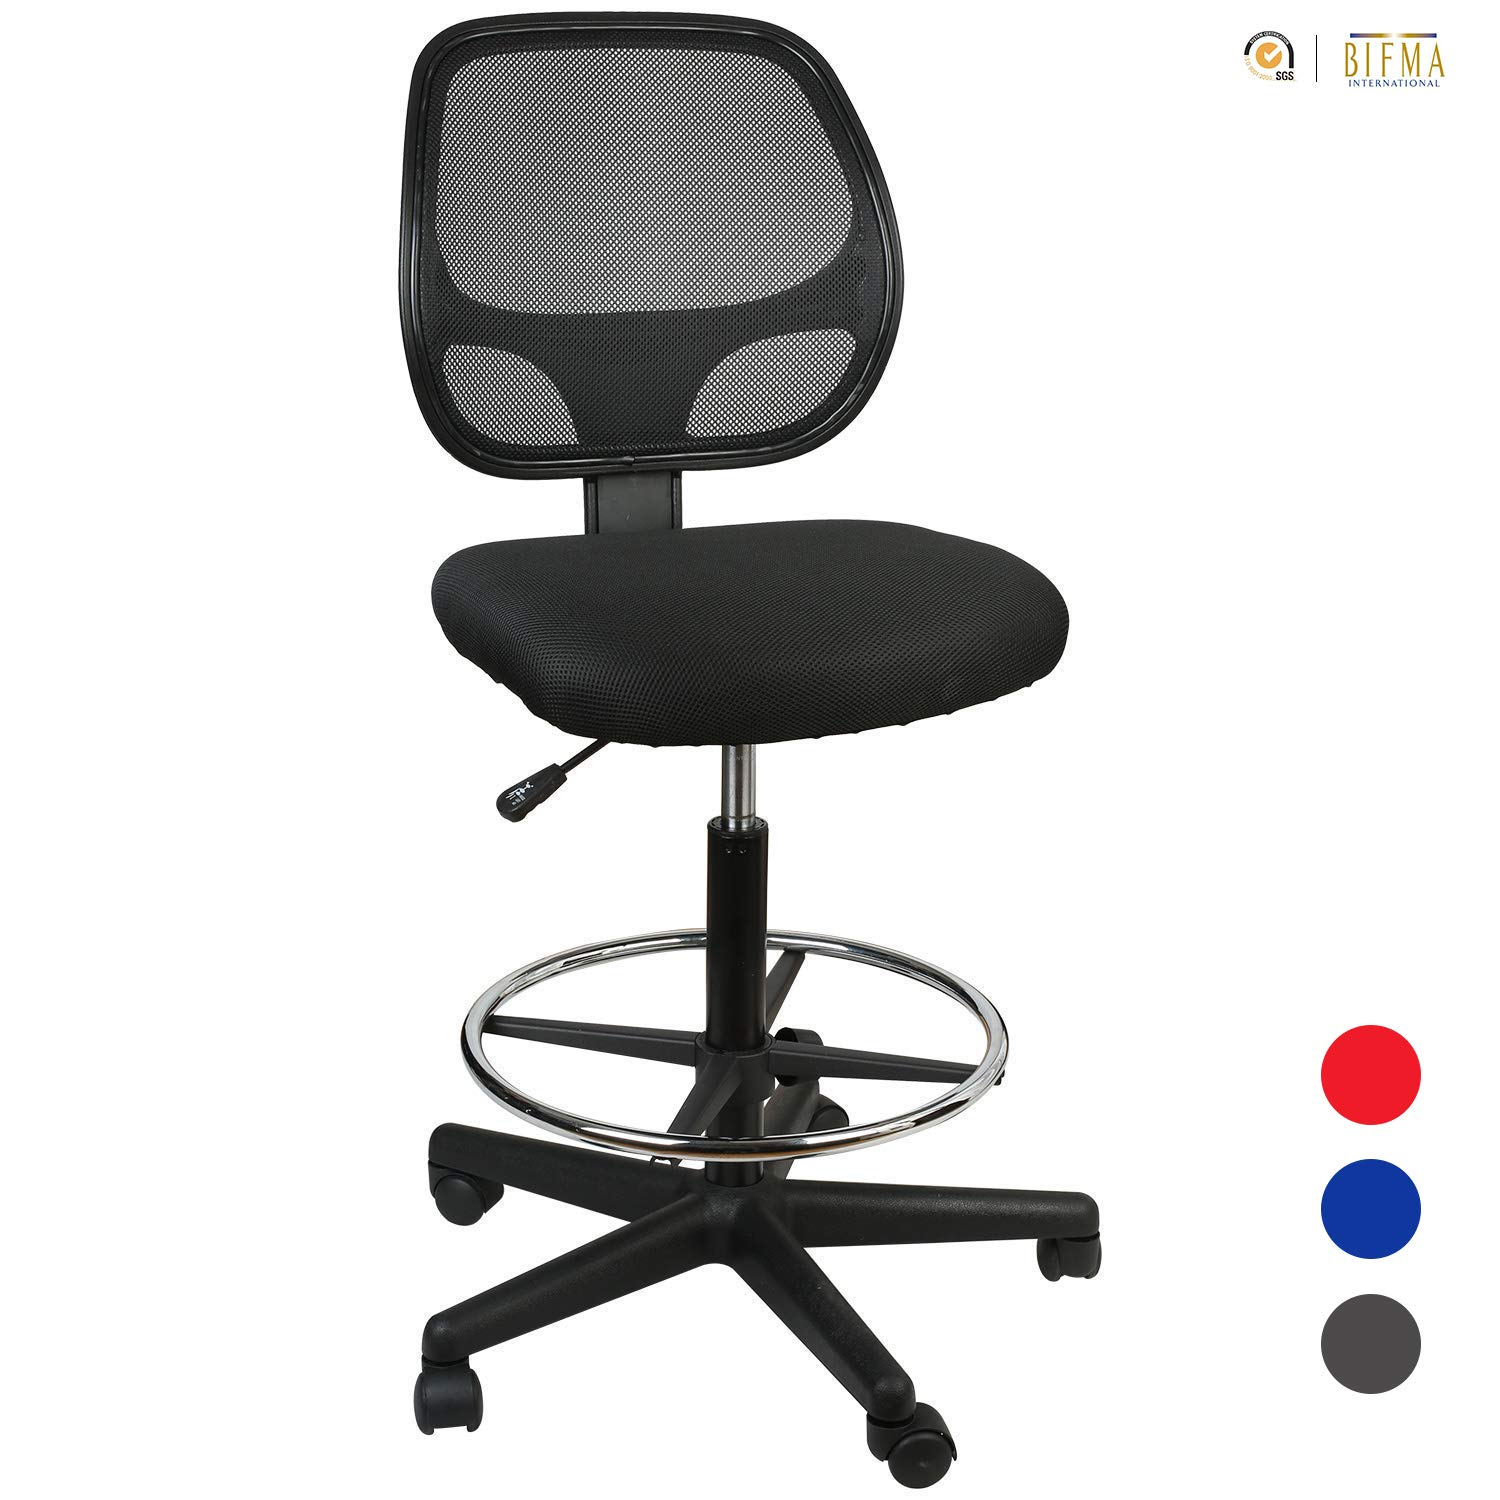 LUCKWIND Office Drafting Chair Mesh - Armless Task Ergonomic Lumbar Support MidBack Computer Desk Chair Adjustable Stool Swivel Chair with Adjustable Chrome Foot Rest (SGS-BIFMA 21-27'' Black)